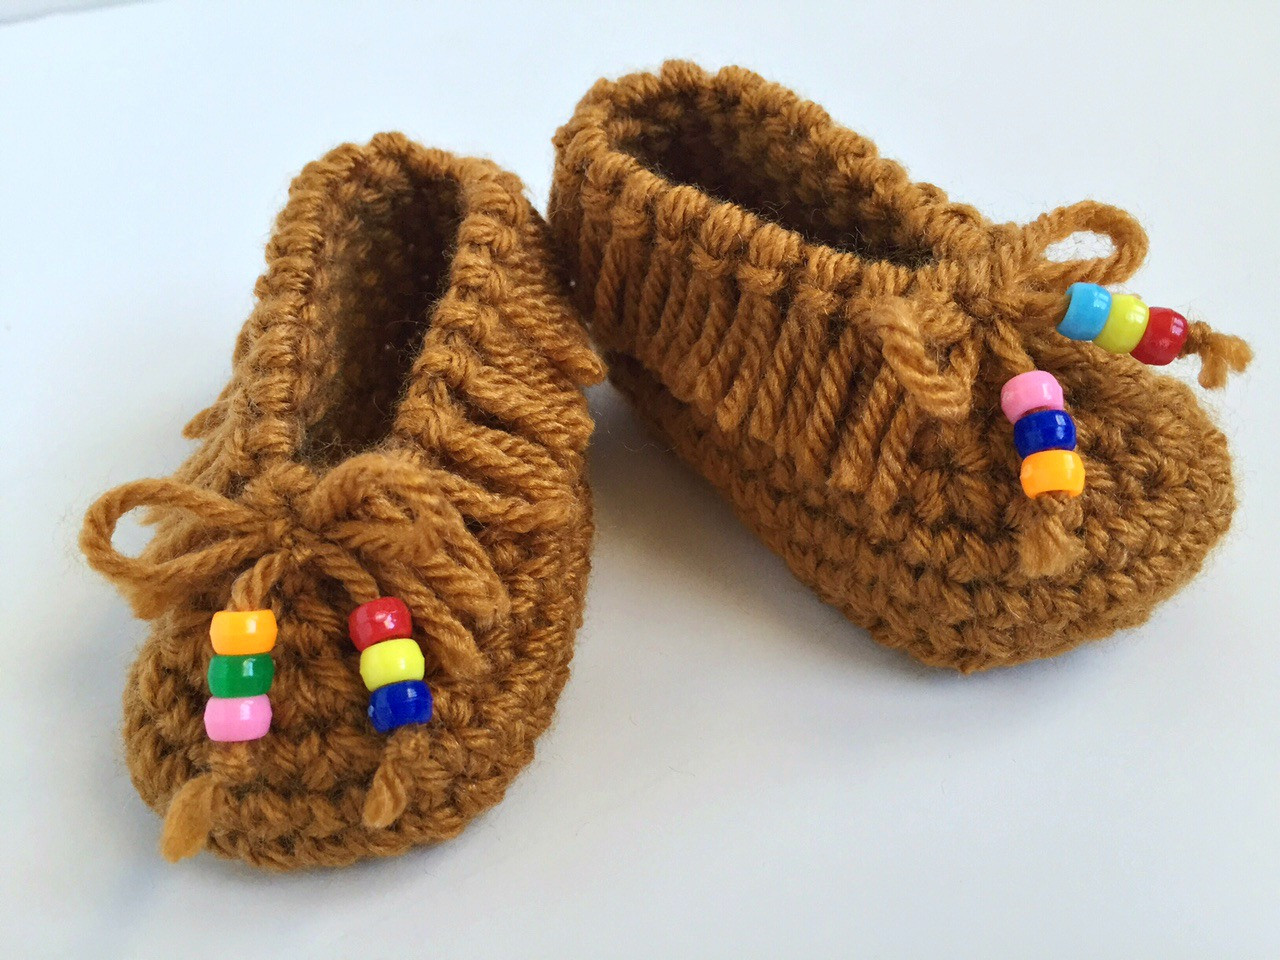 Crochet Accessories Best Of these 32 Crocheted Baby Accessories Will Look Adorable Of New 47 Photos Crochet Accessories